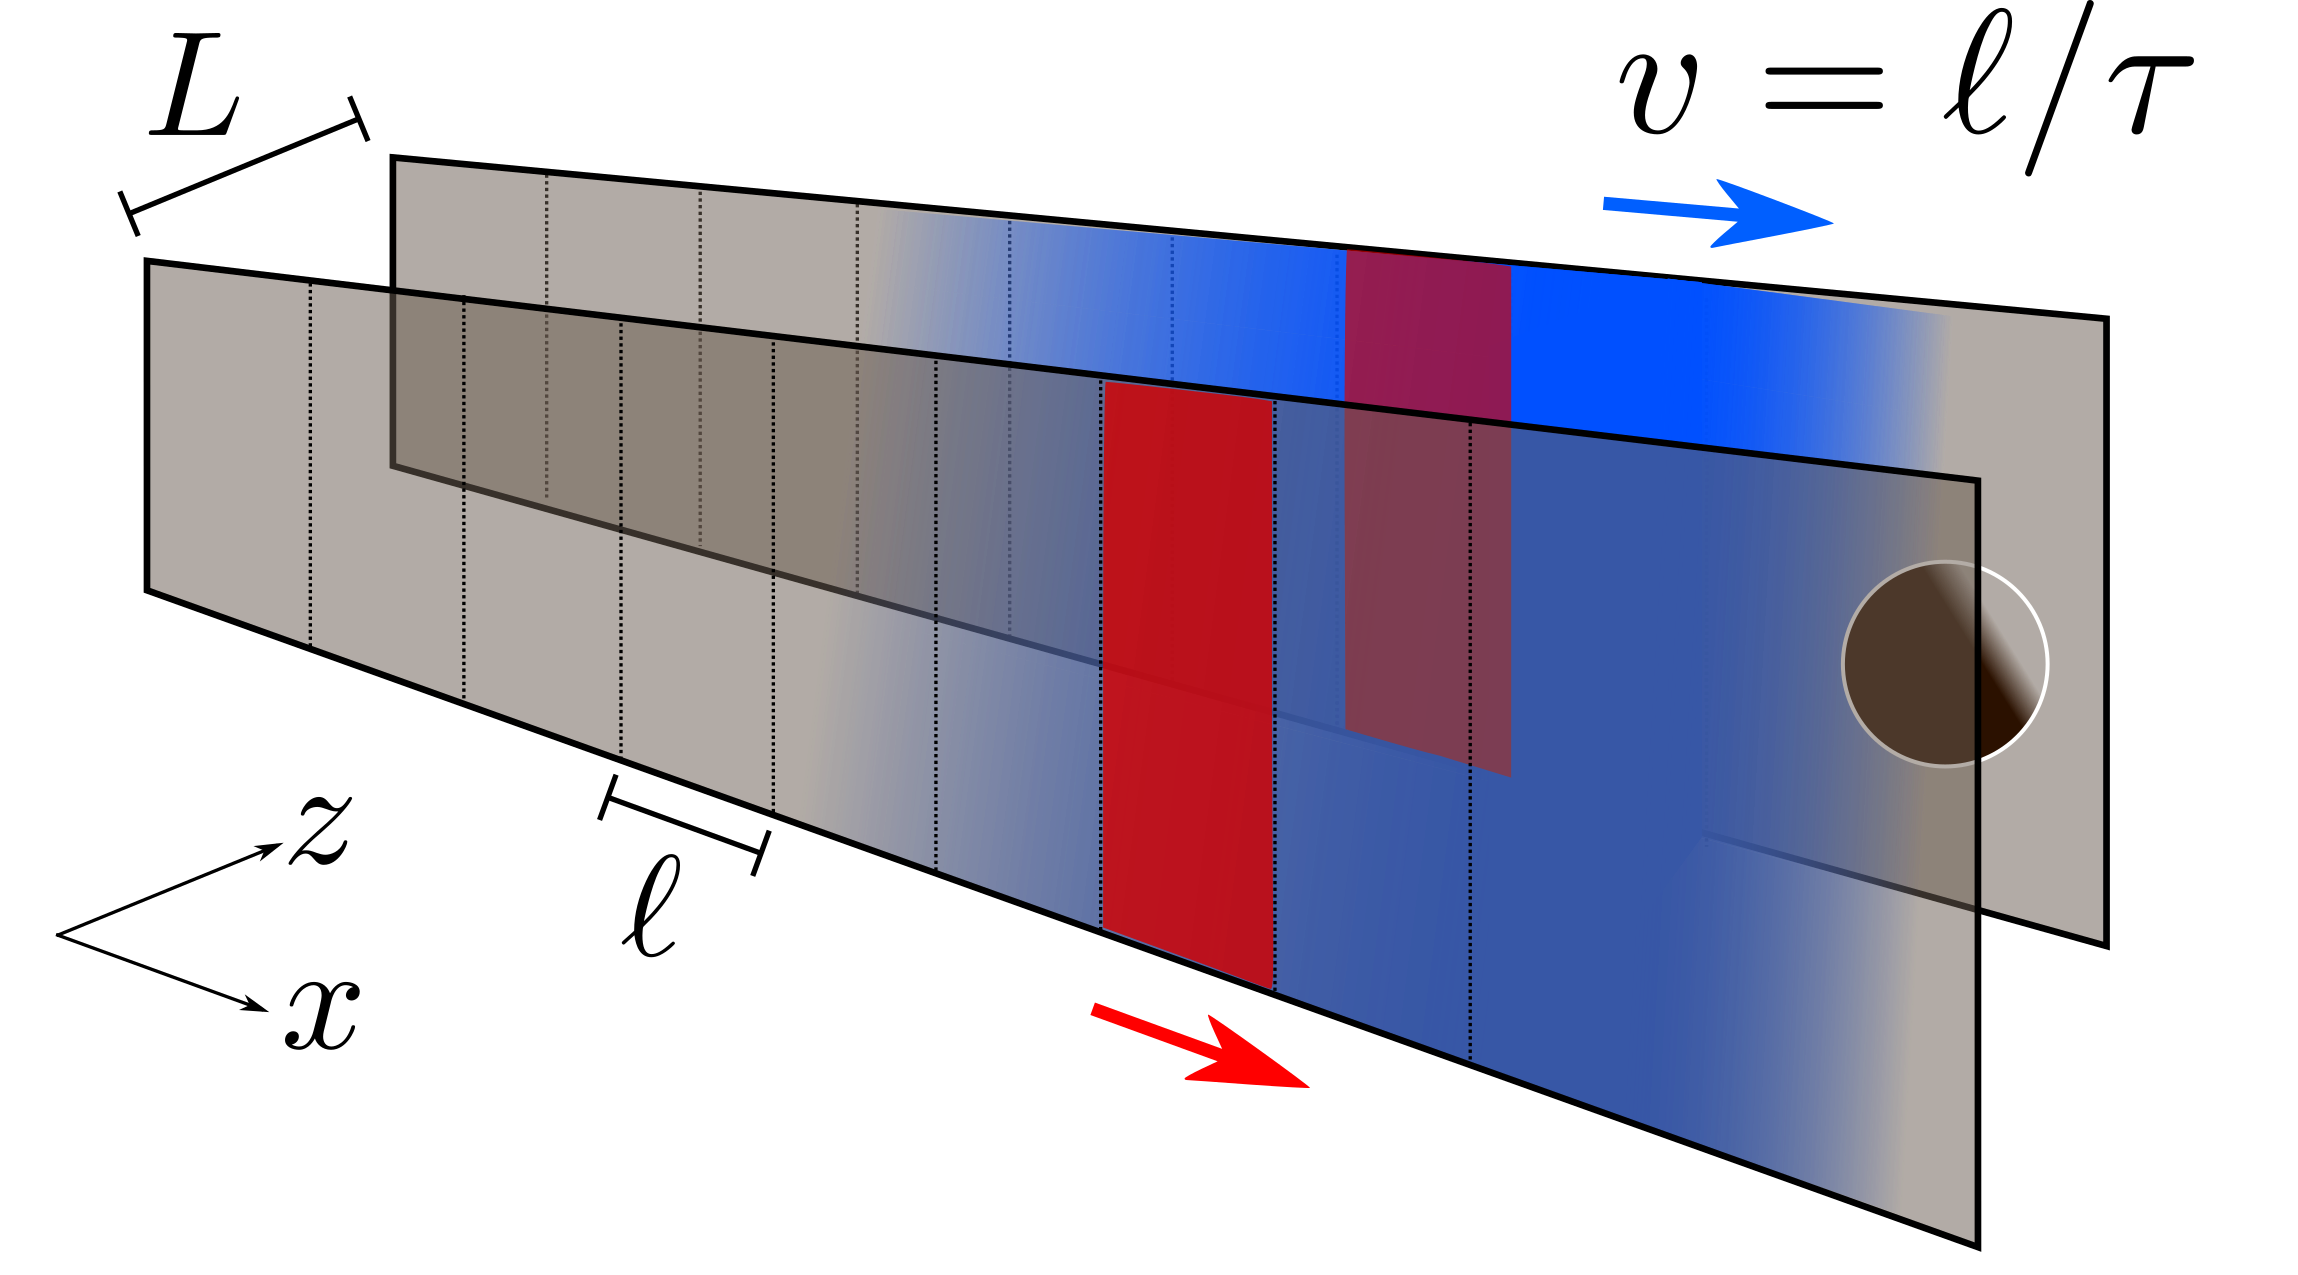 Schematic of the conveyer analyzed in Sec.